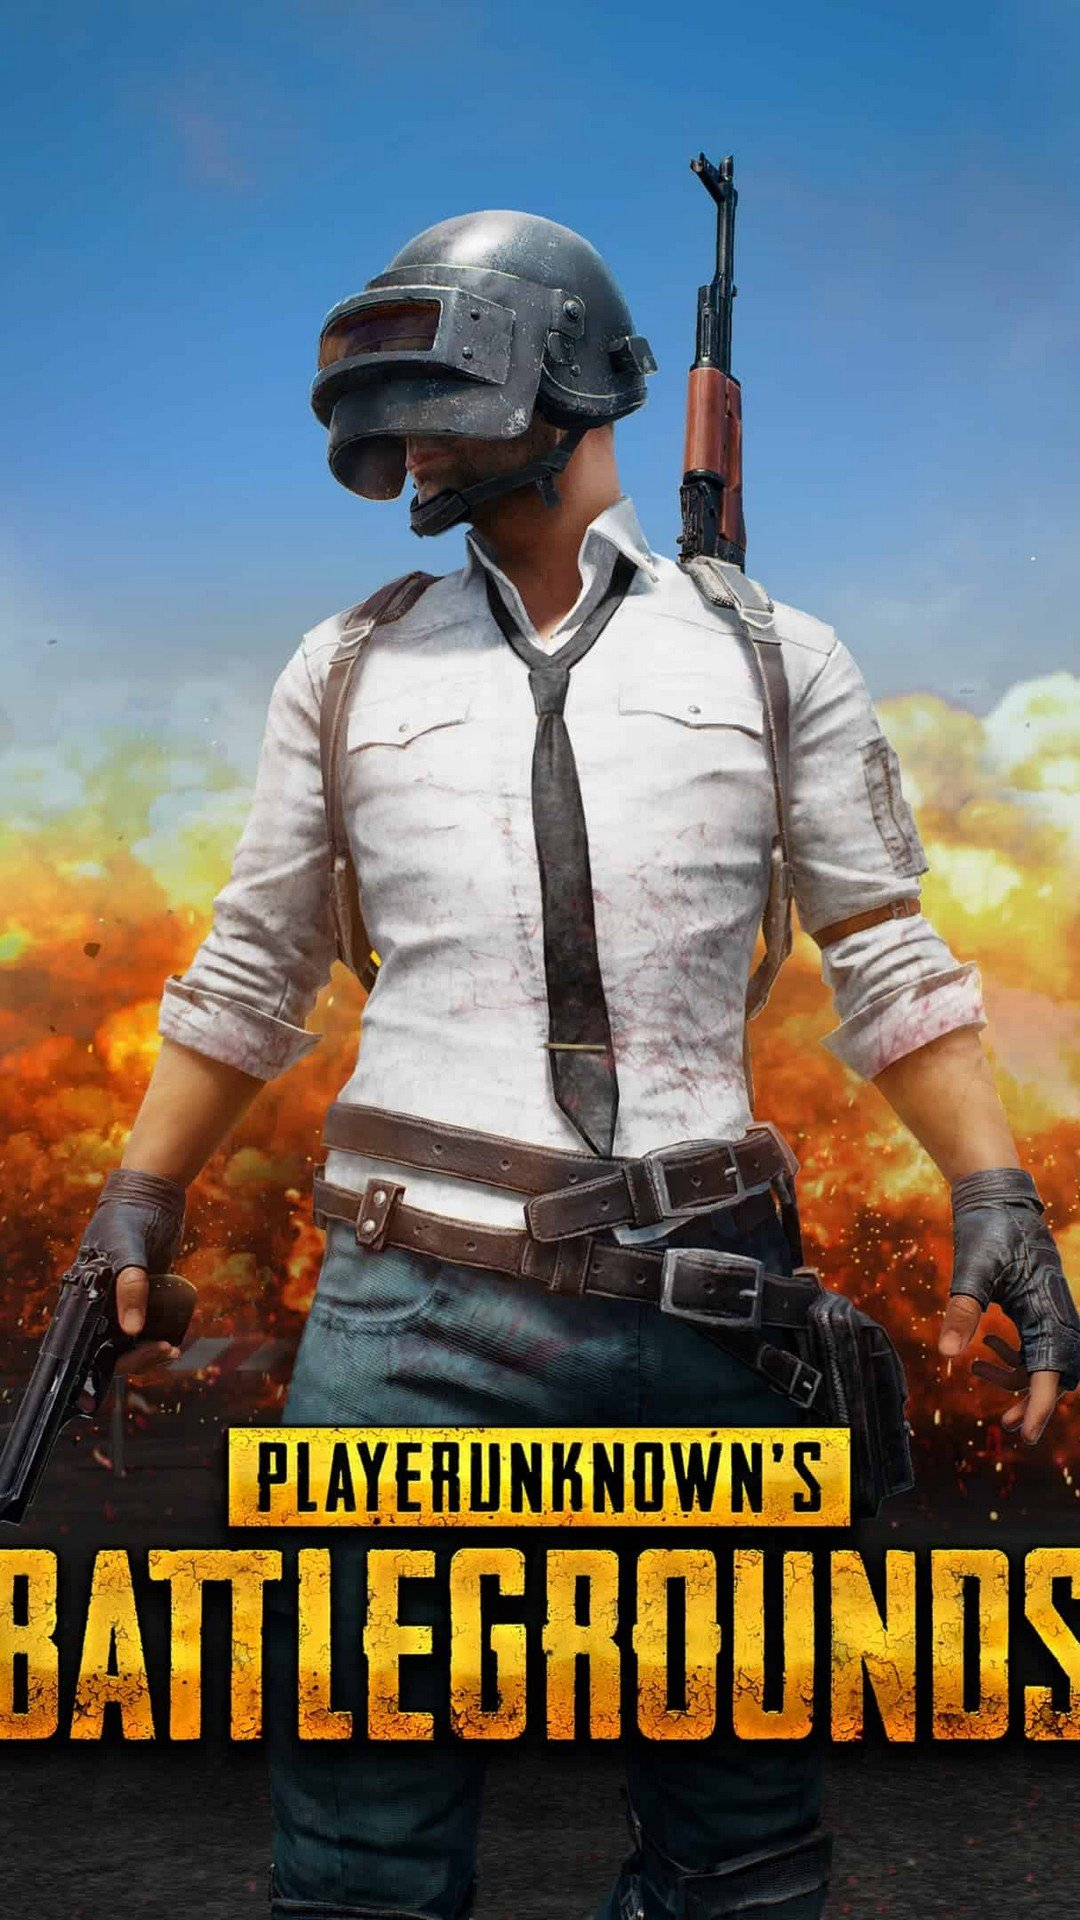 PUBG Mobile iPhone 6 Wallpaper 2020 Cute Wallpapers 1080x1920